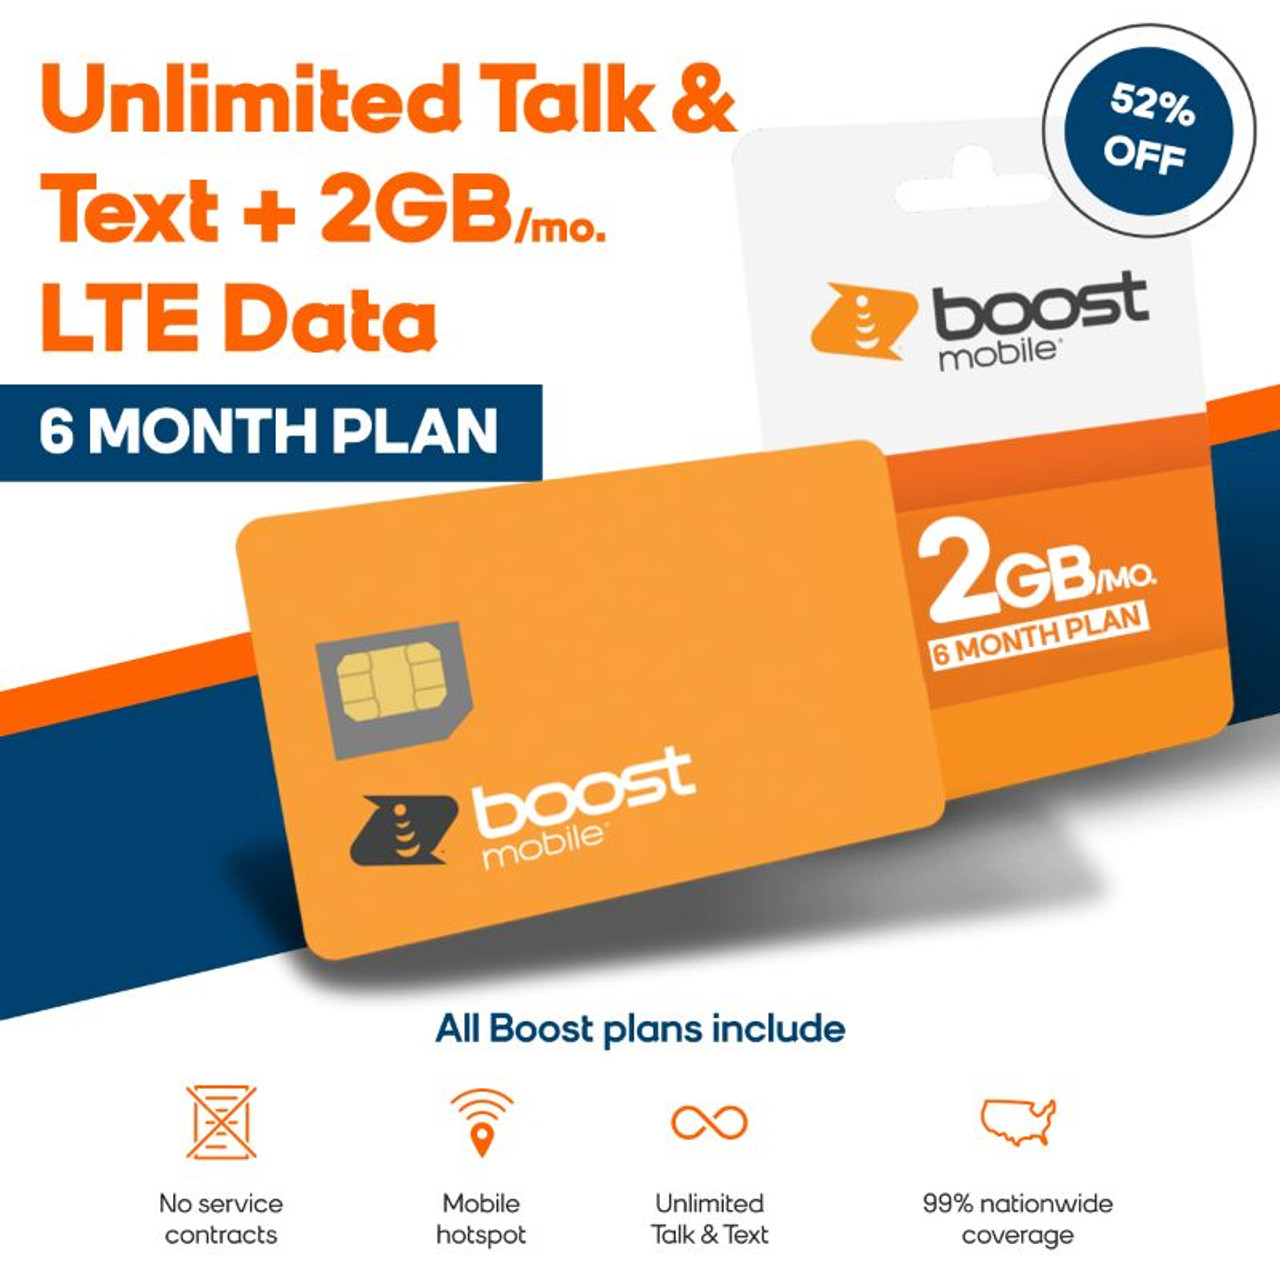 Over 50% Off 6 Months of Unlimited Talk & Text + 2GB LTE Data - Boost Mobile